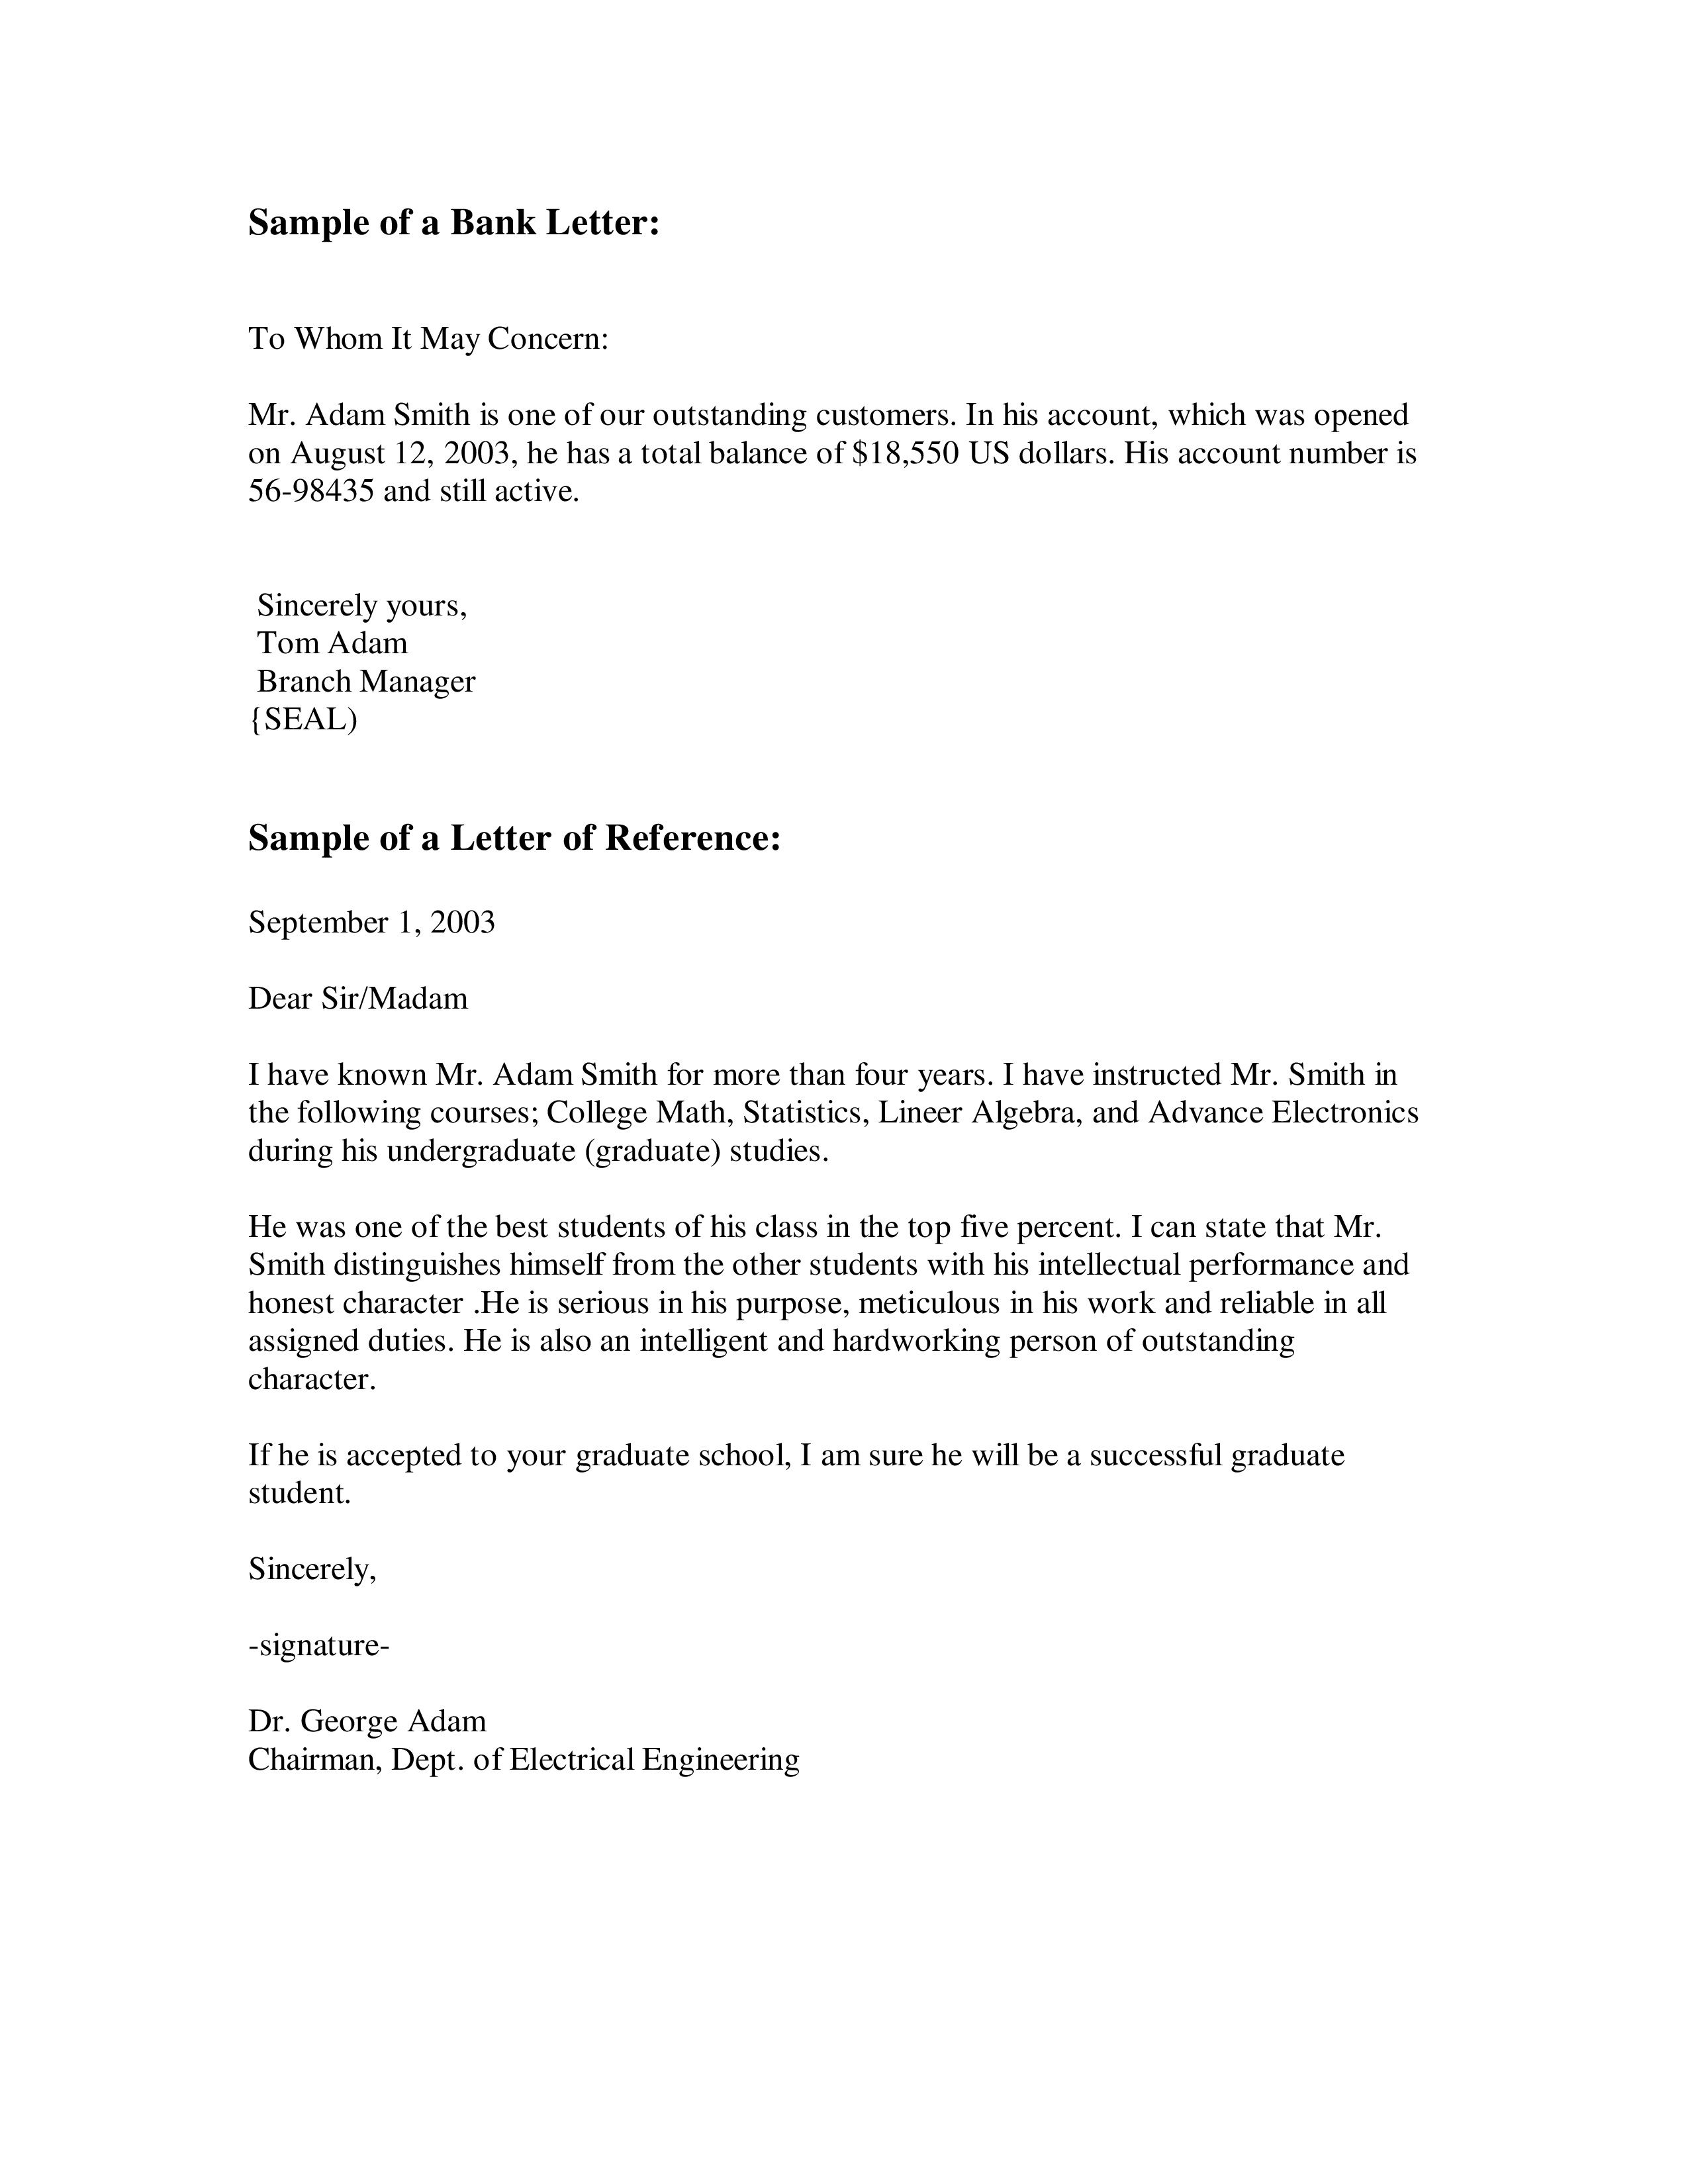 Sample Recommendation Letter For A Job from www.addictionary.org